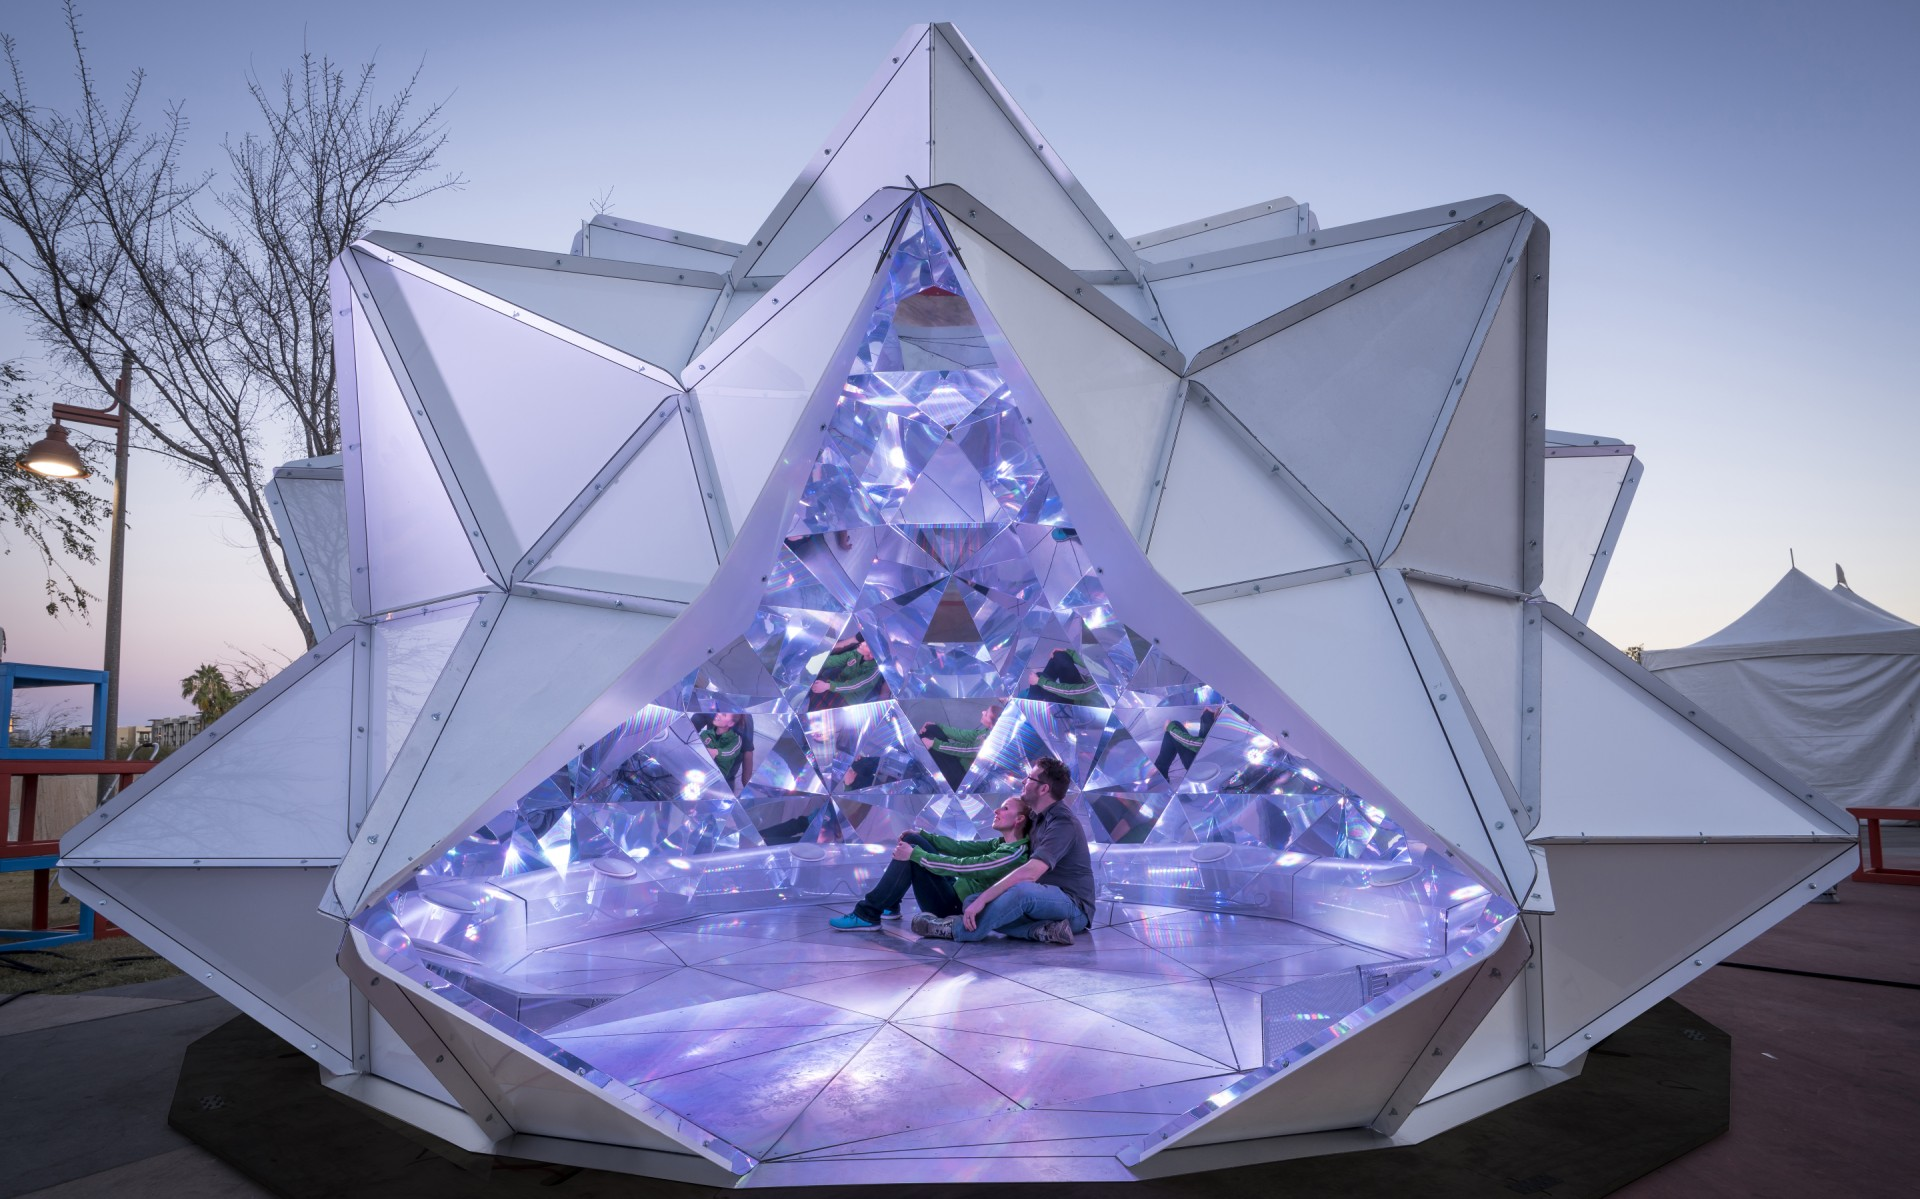 Lumenpulse luminaires bend reality in a giant, interactive 3D kaleidoscope created by artist KAZ Shirane and produced by Reuben Young.  – Sean Deckert